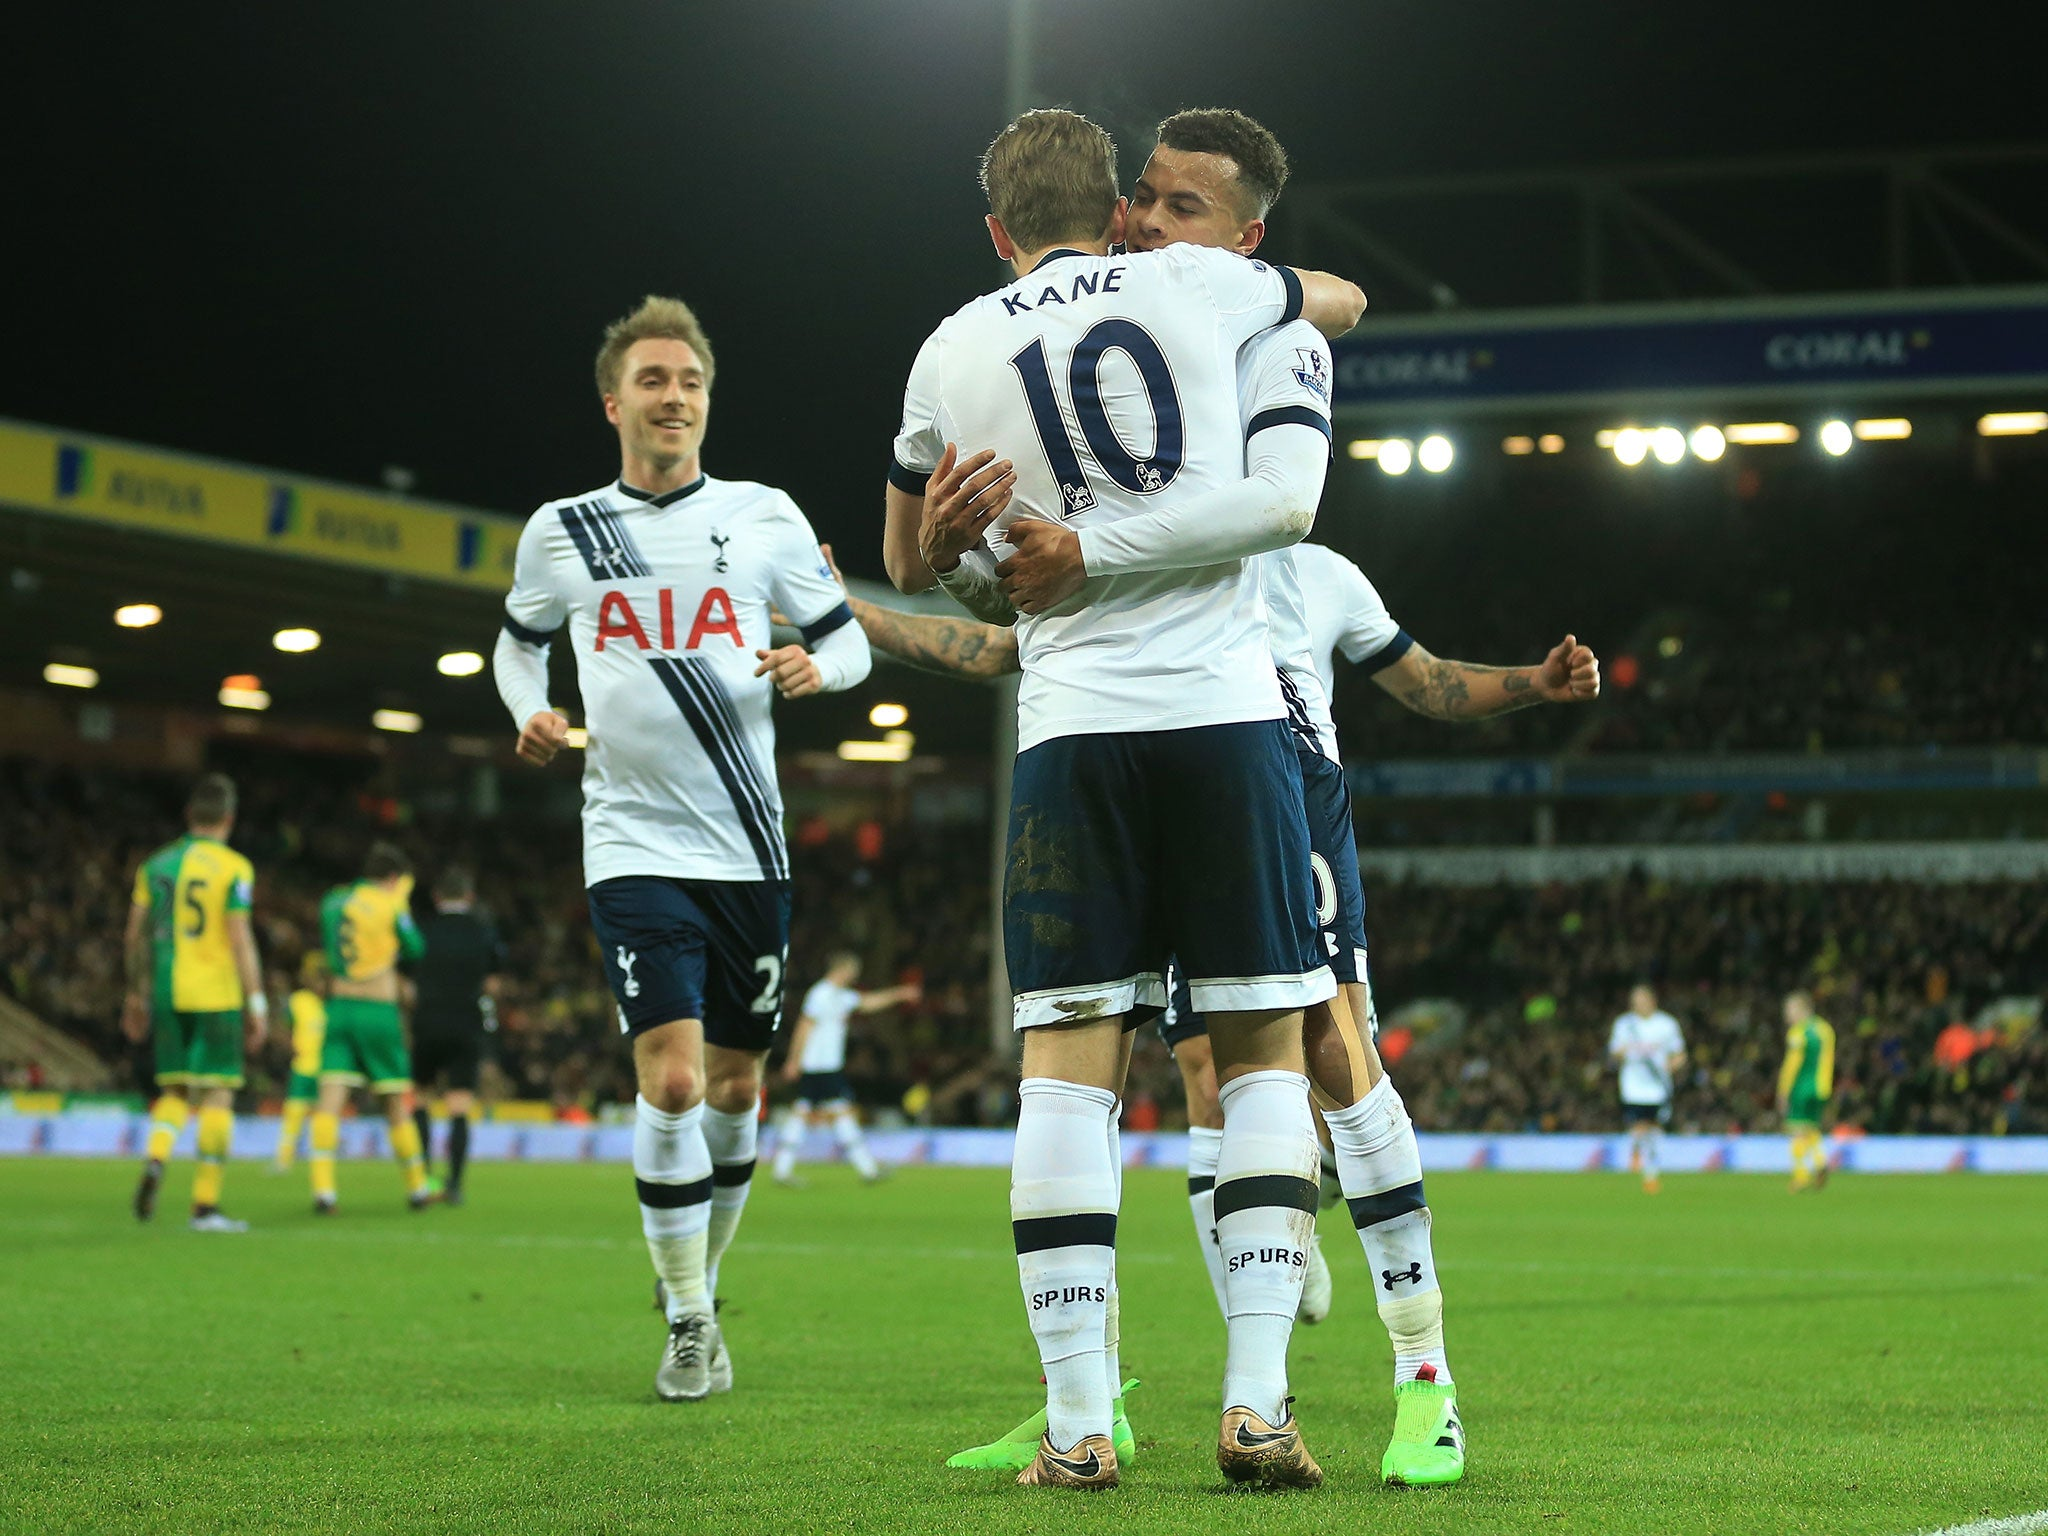 Norwich Vs Tottenham Match Report Harry Kane Double Adds To Dele Alli Opener The Independent Independent